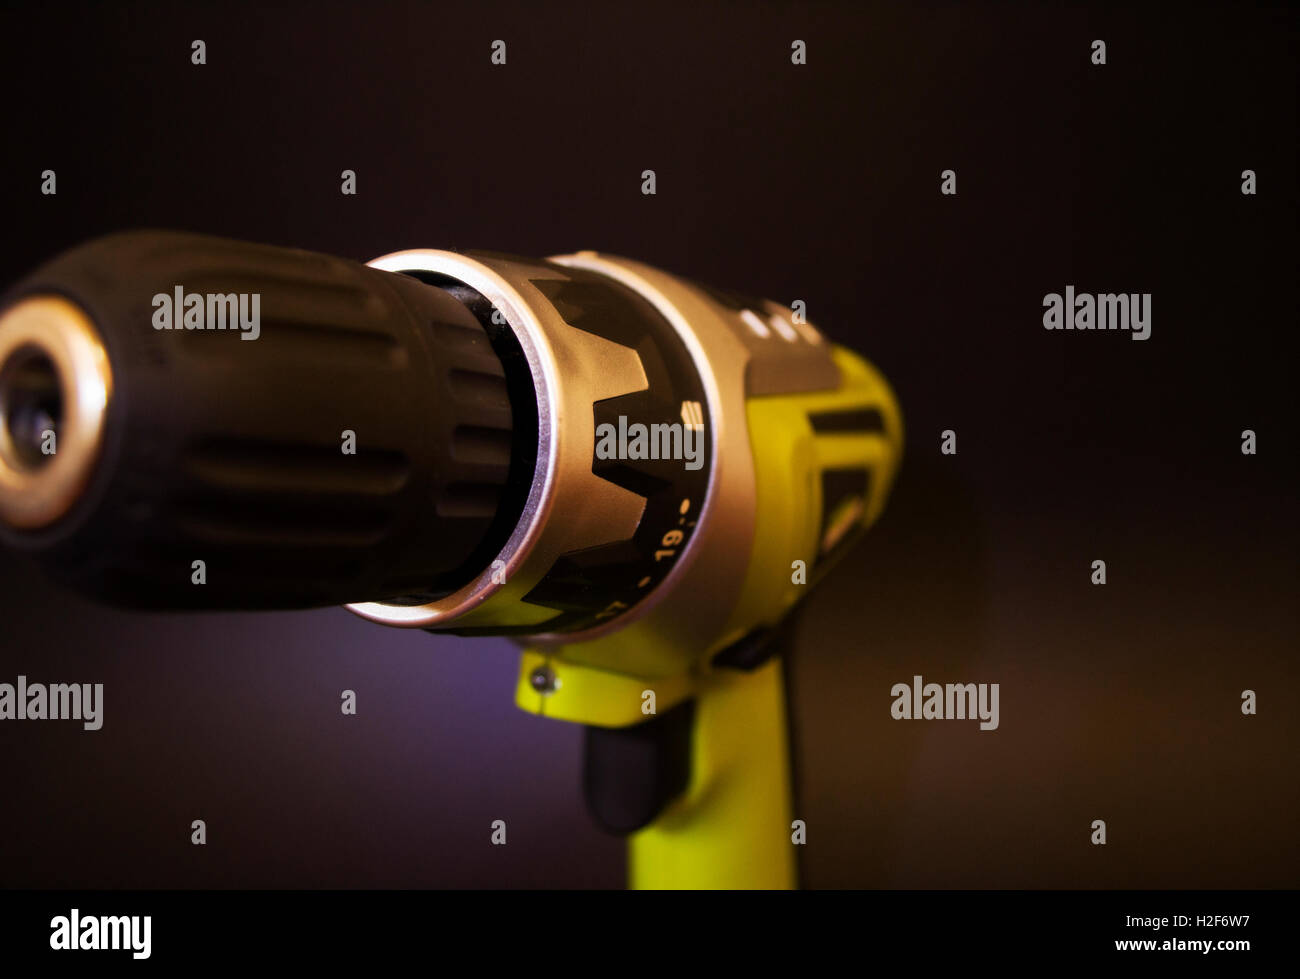 green drill tool image with white background. Battery operated power drill tool - Stock Image